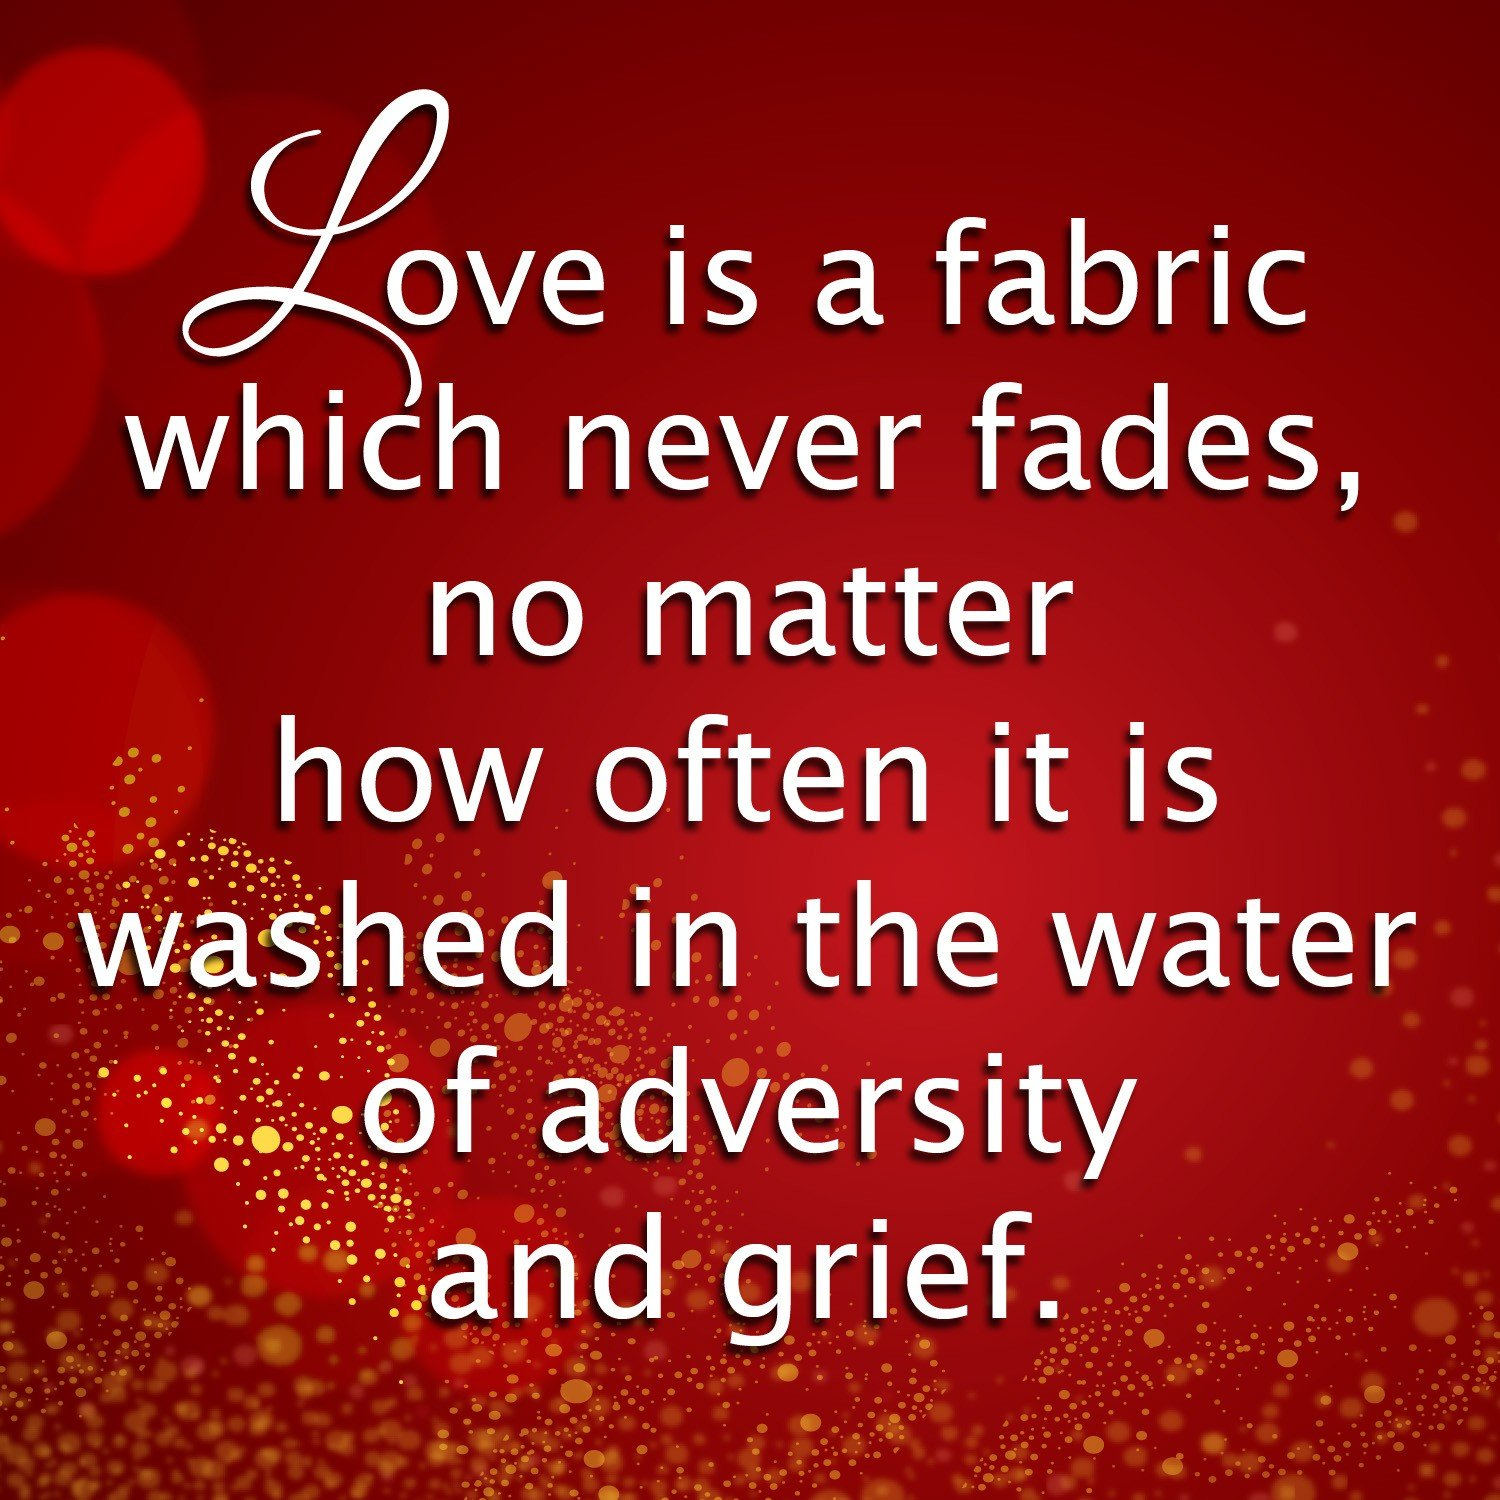 Love Quotes: Love Fades Away Quotes. QuotesGram